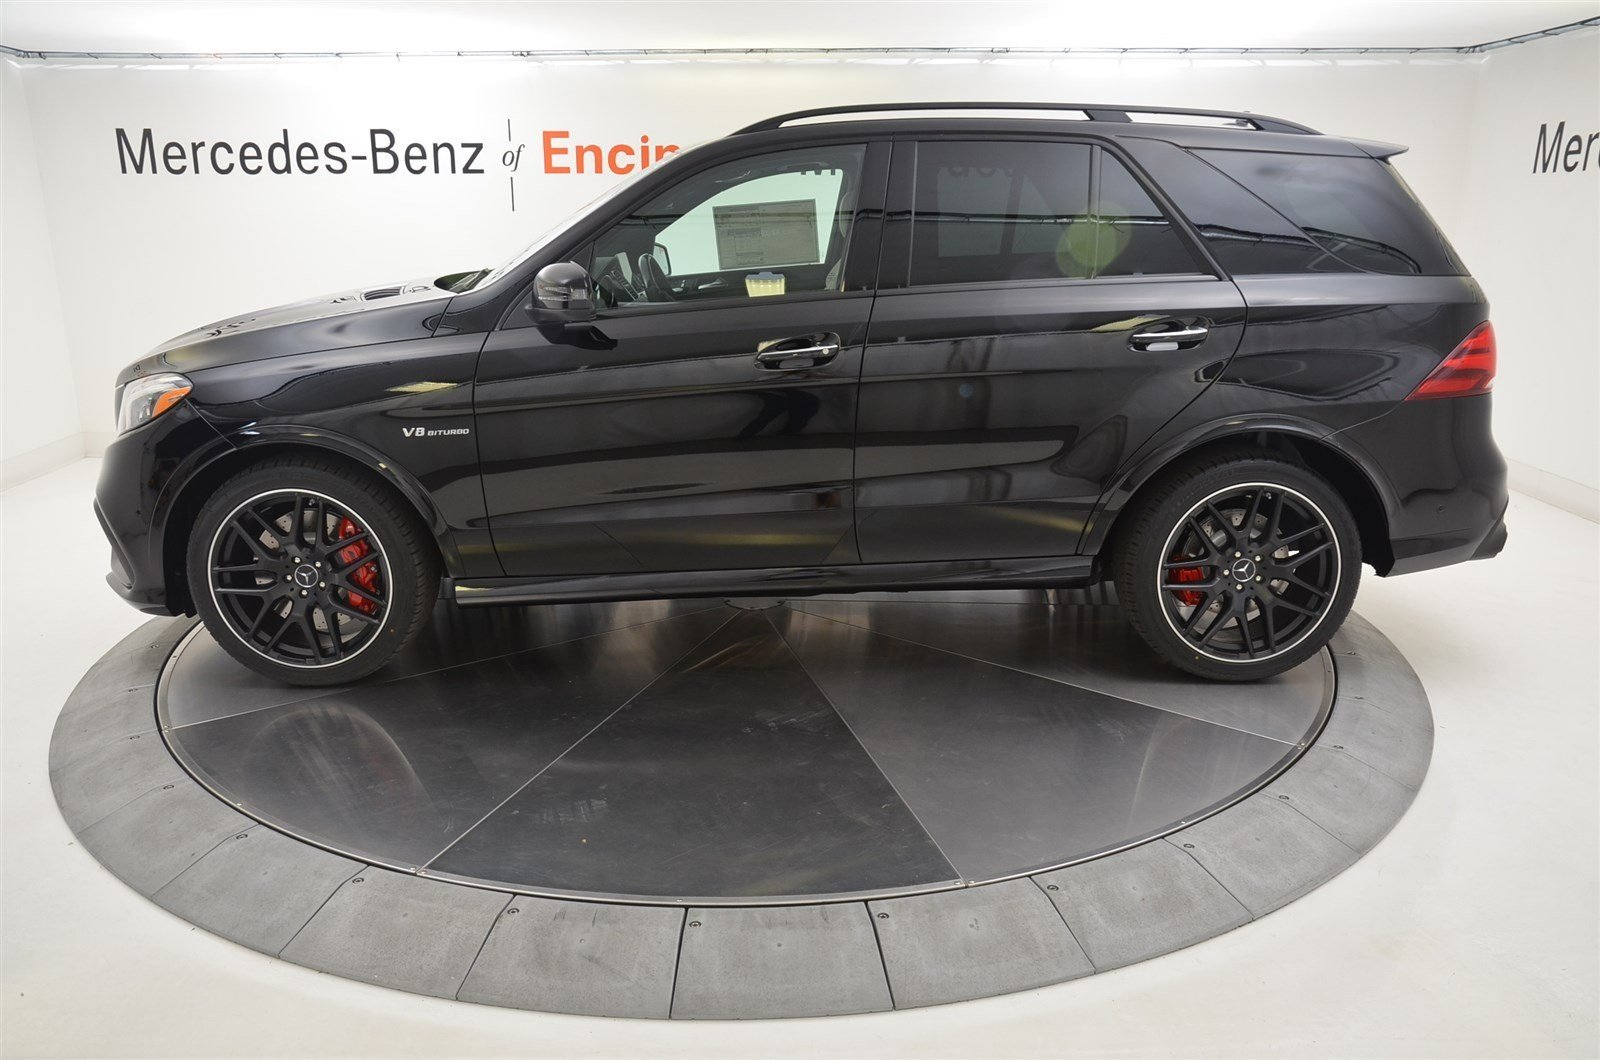 new 2016 mercedes benz gle amg gle 63 s suv suv in encino. Black Bedroom Furniture Sets. Home Design Ideas